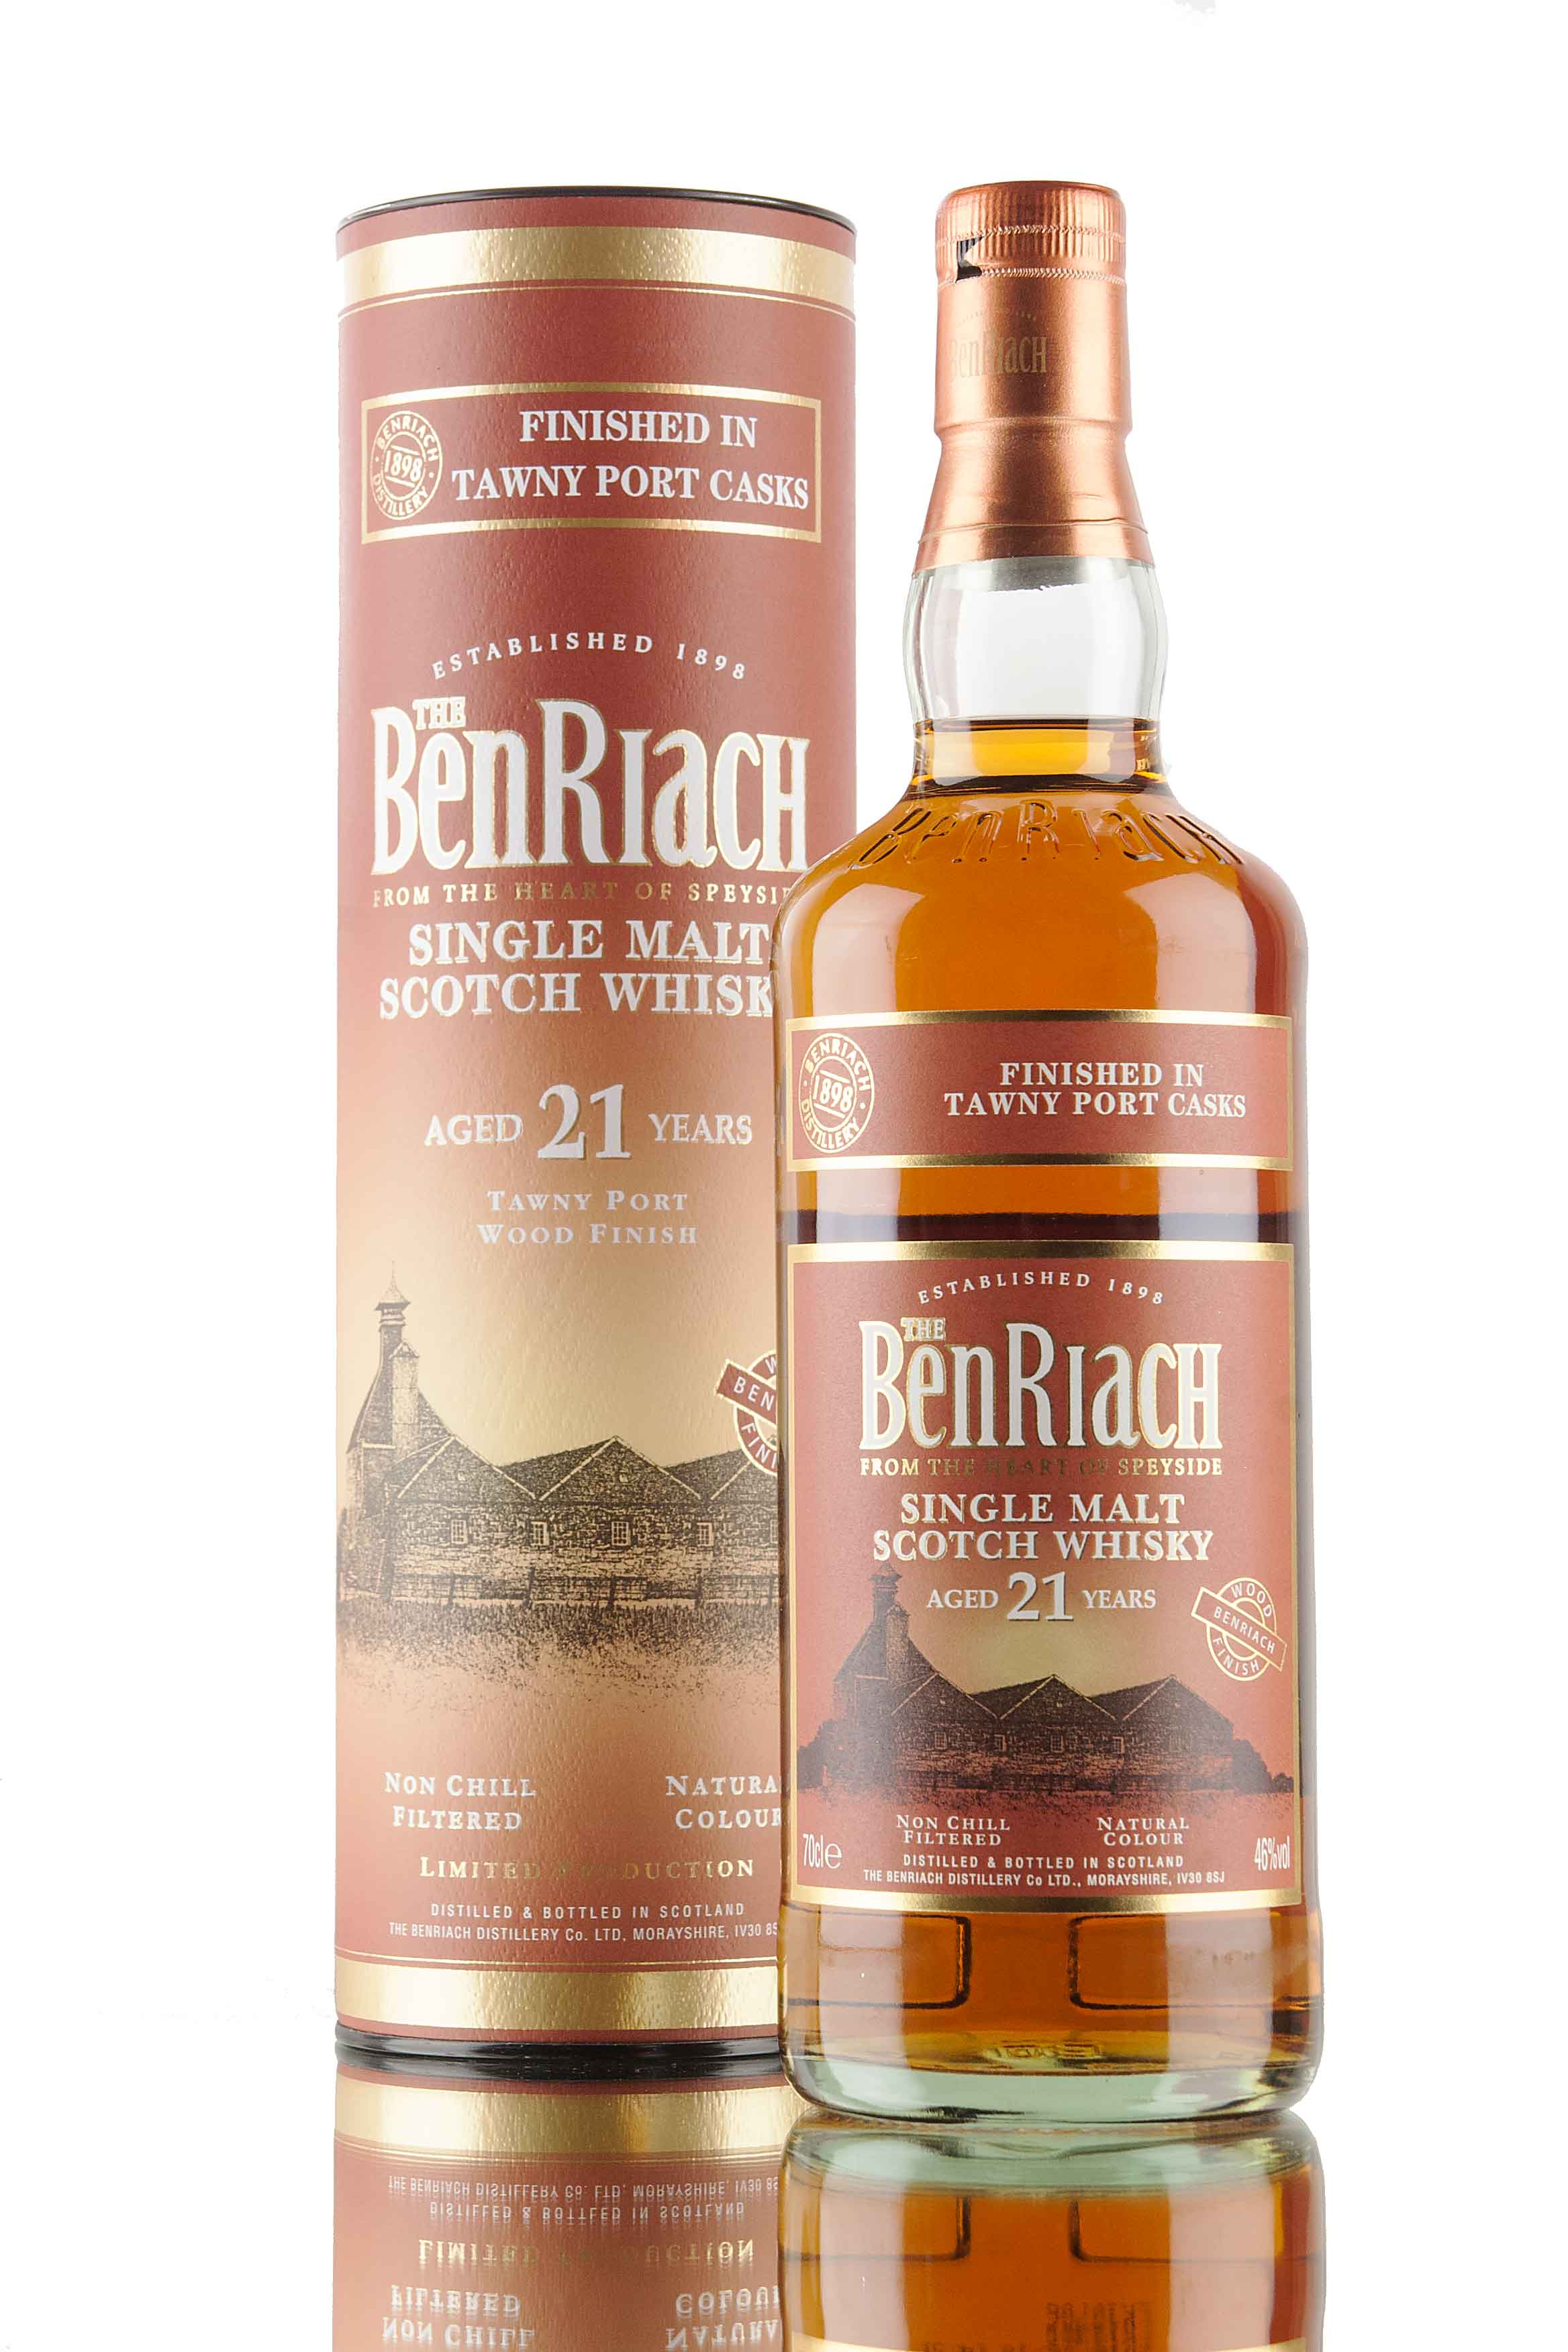 BenRiach 21 Year Old Tawny Port Wood Finish